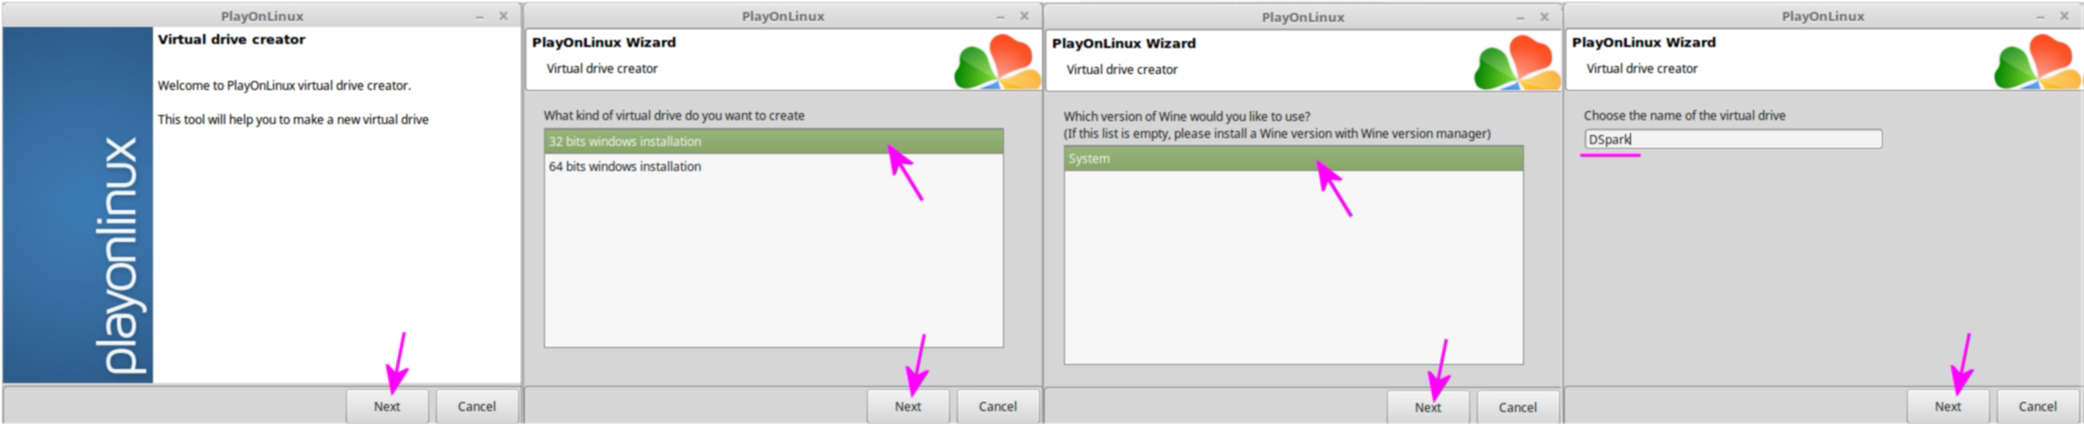 How To Install Designspark Pcb On Linux With Wine Of Wizard Standard Editions Will Allow You Design New Circuits Then Name The Virtual Drive As Prefer Dspark Is Good A Any And We Refer From Here